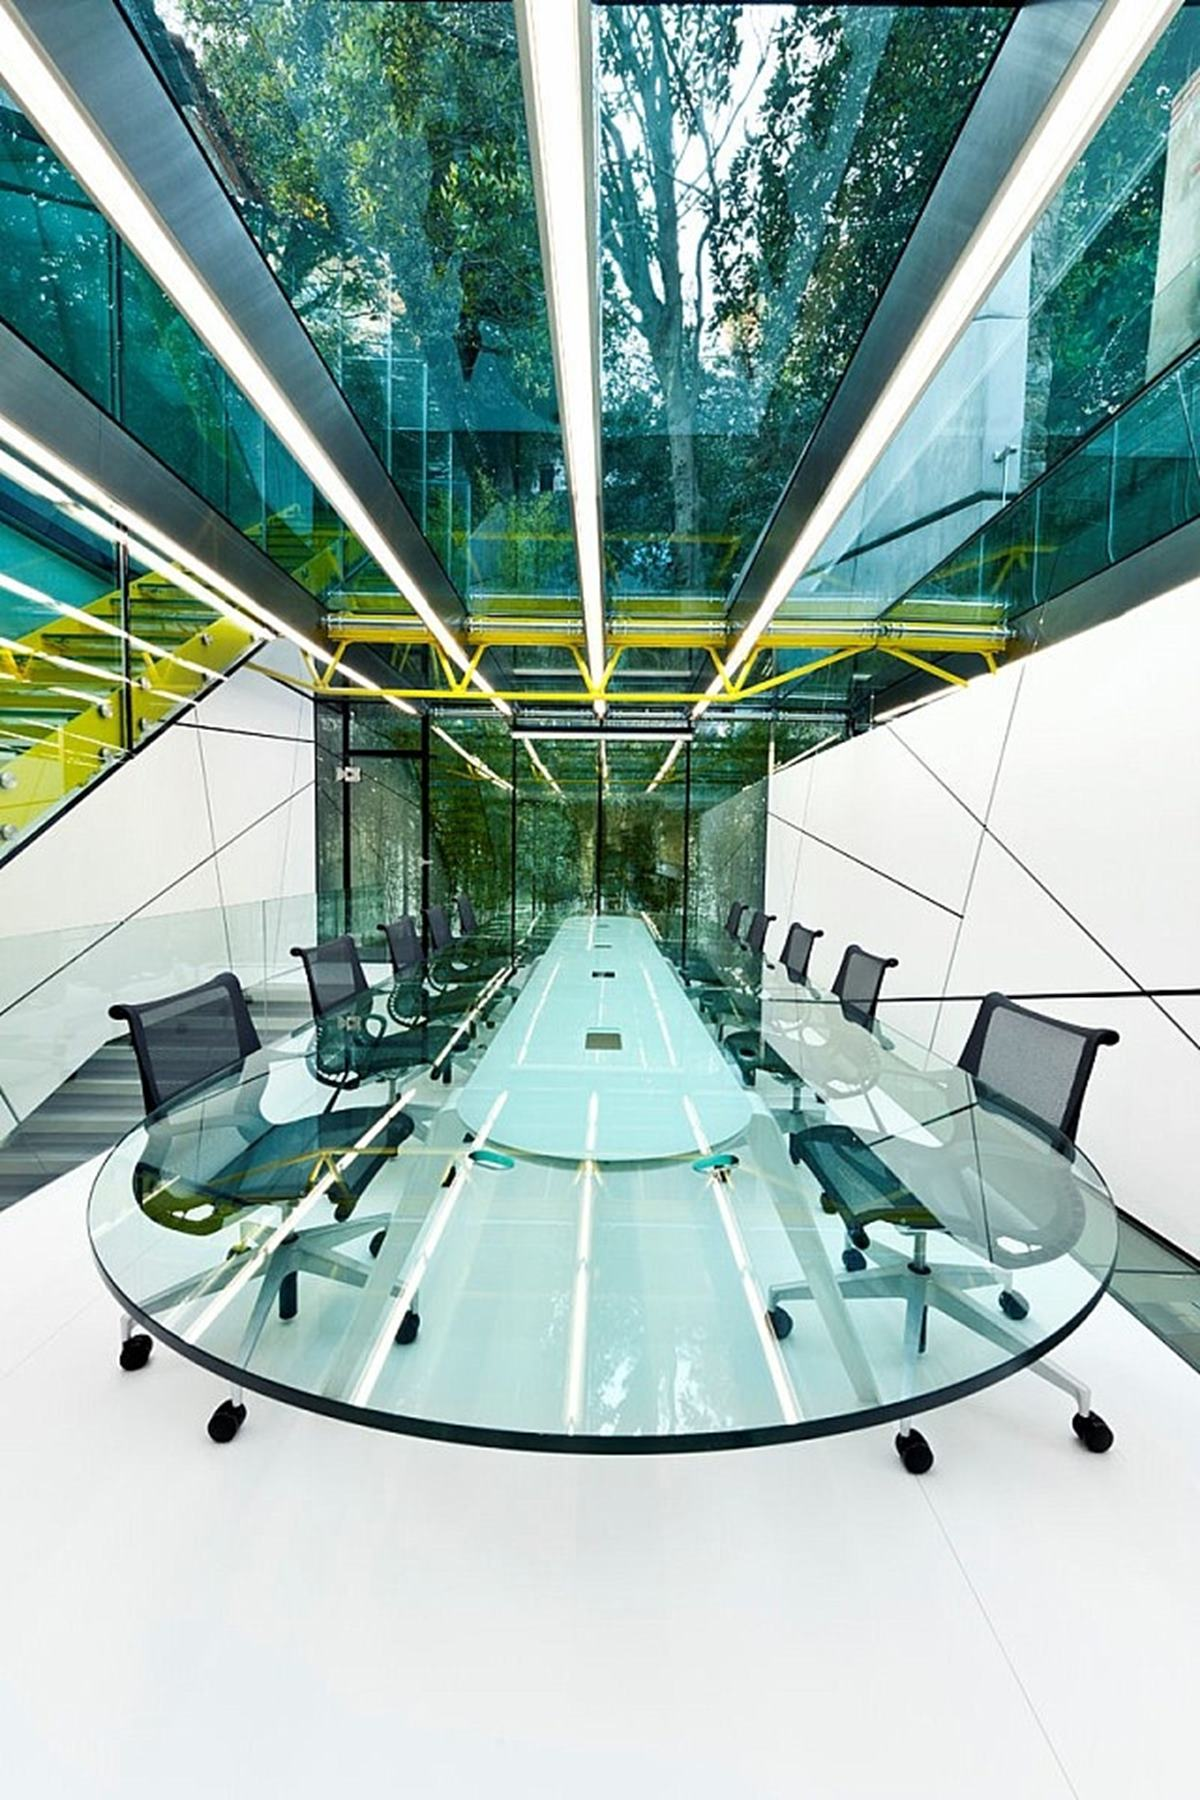 This glass chamber